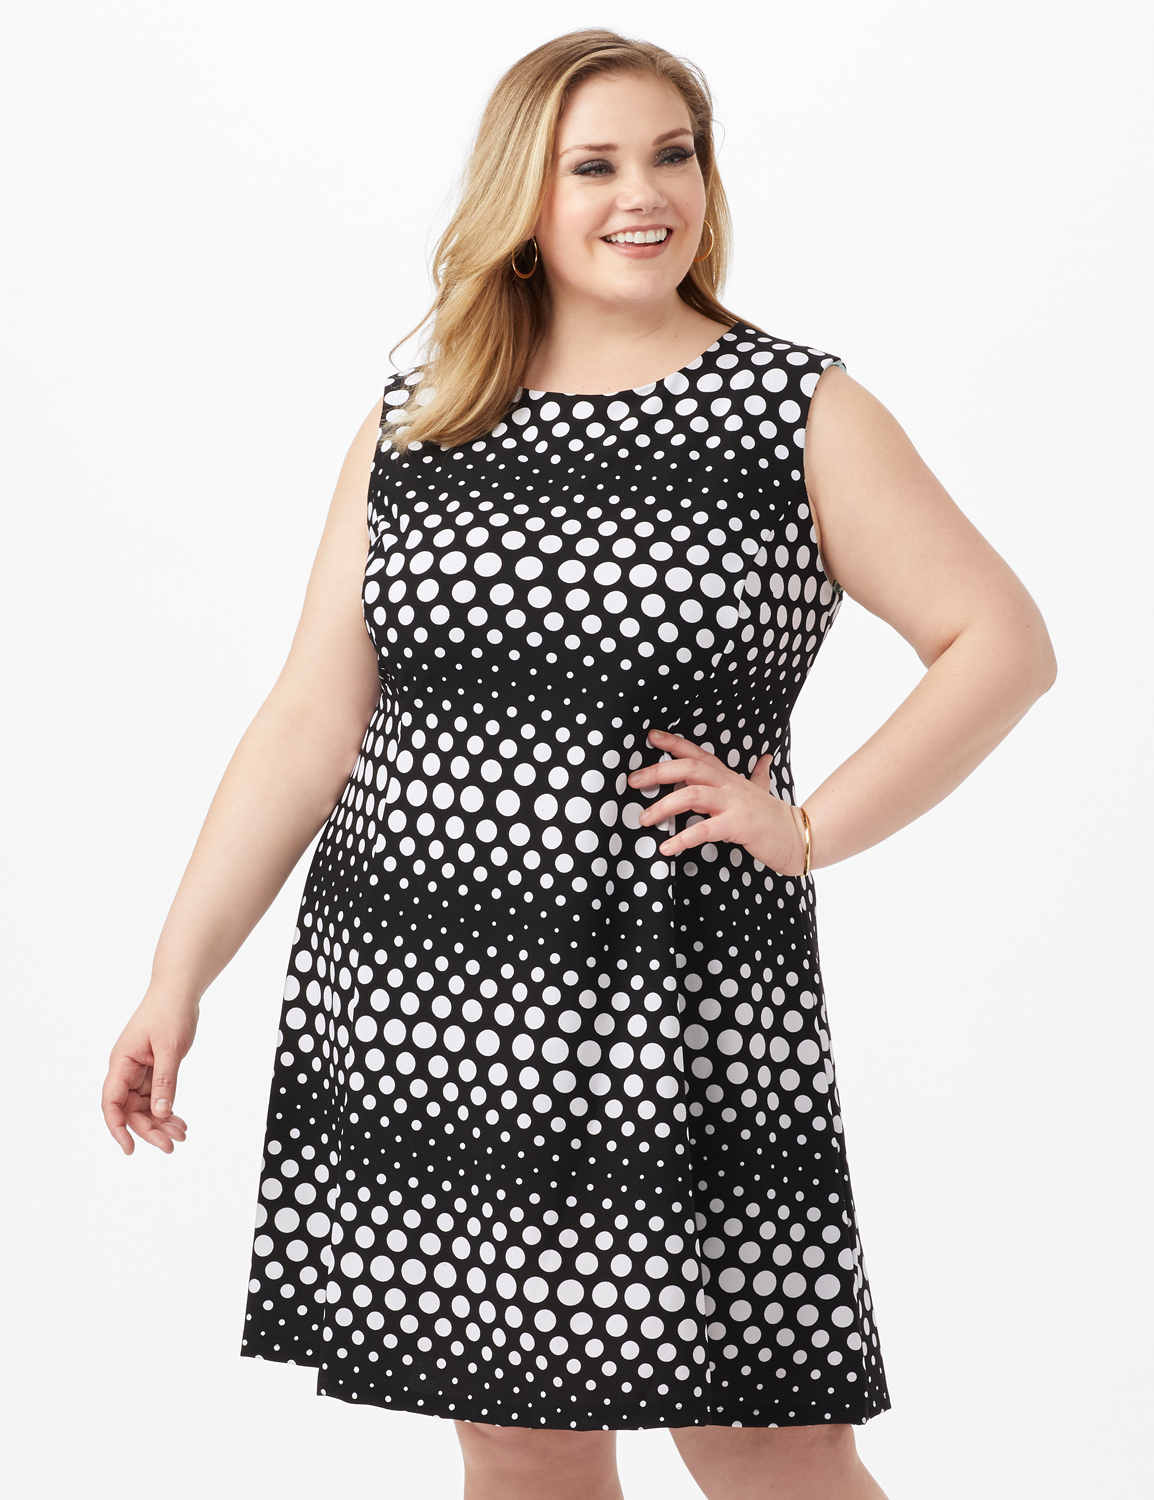 Dotted Stripe Fit and Flare Scuba Dress -Black/White - Front